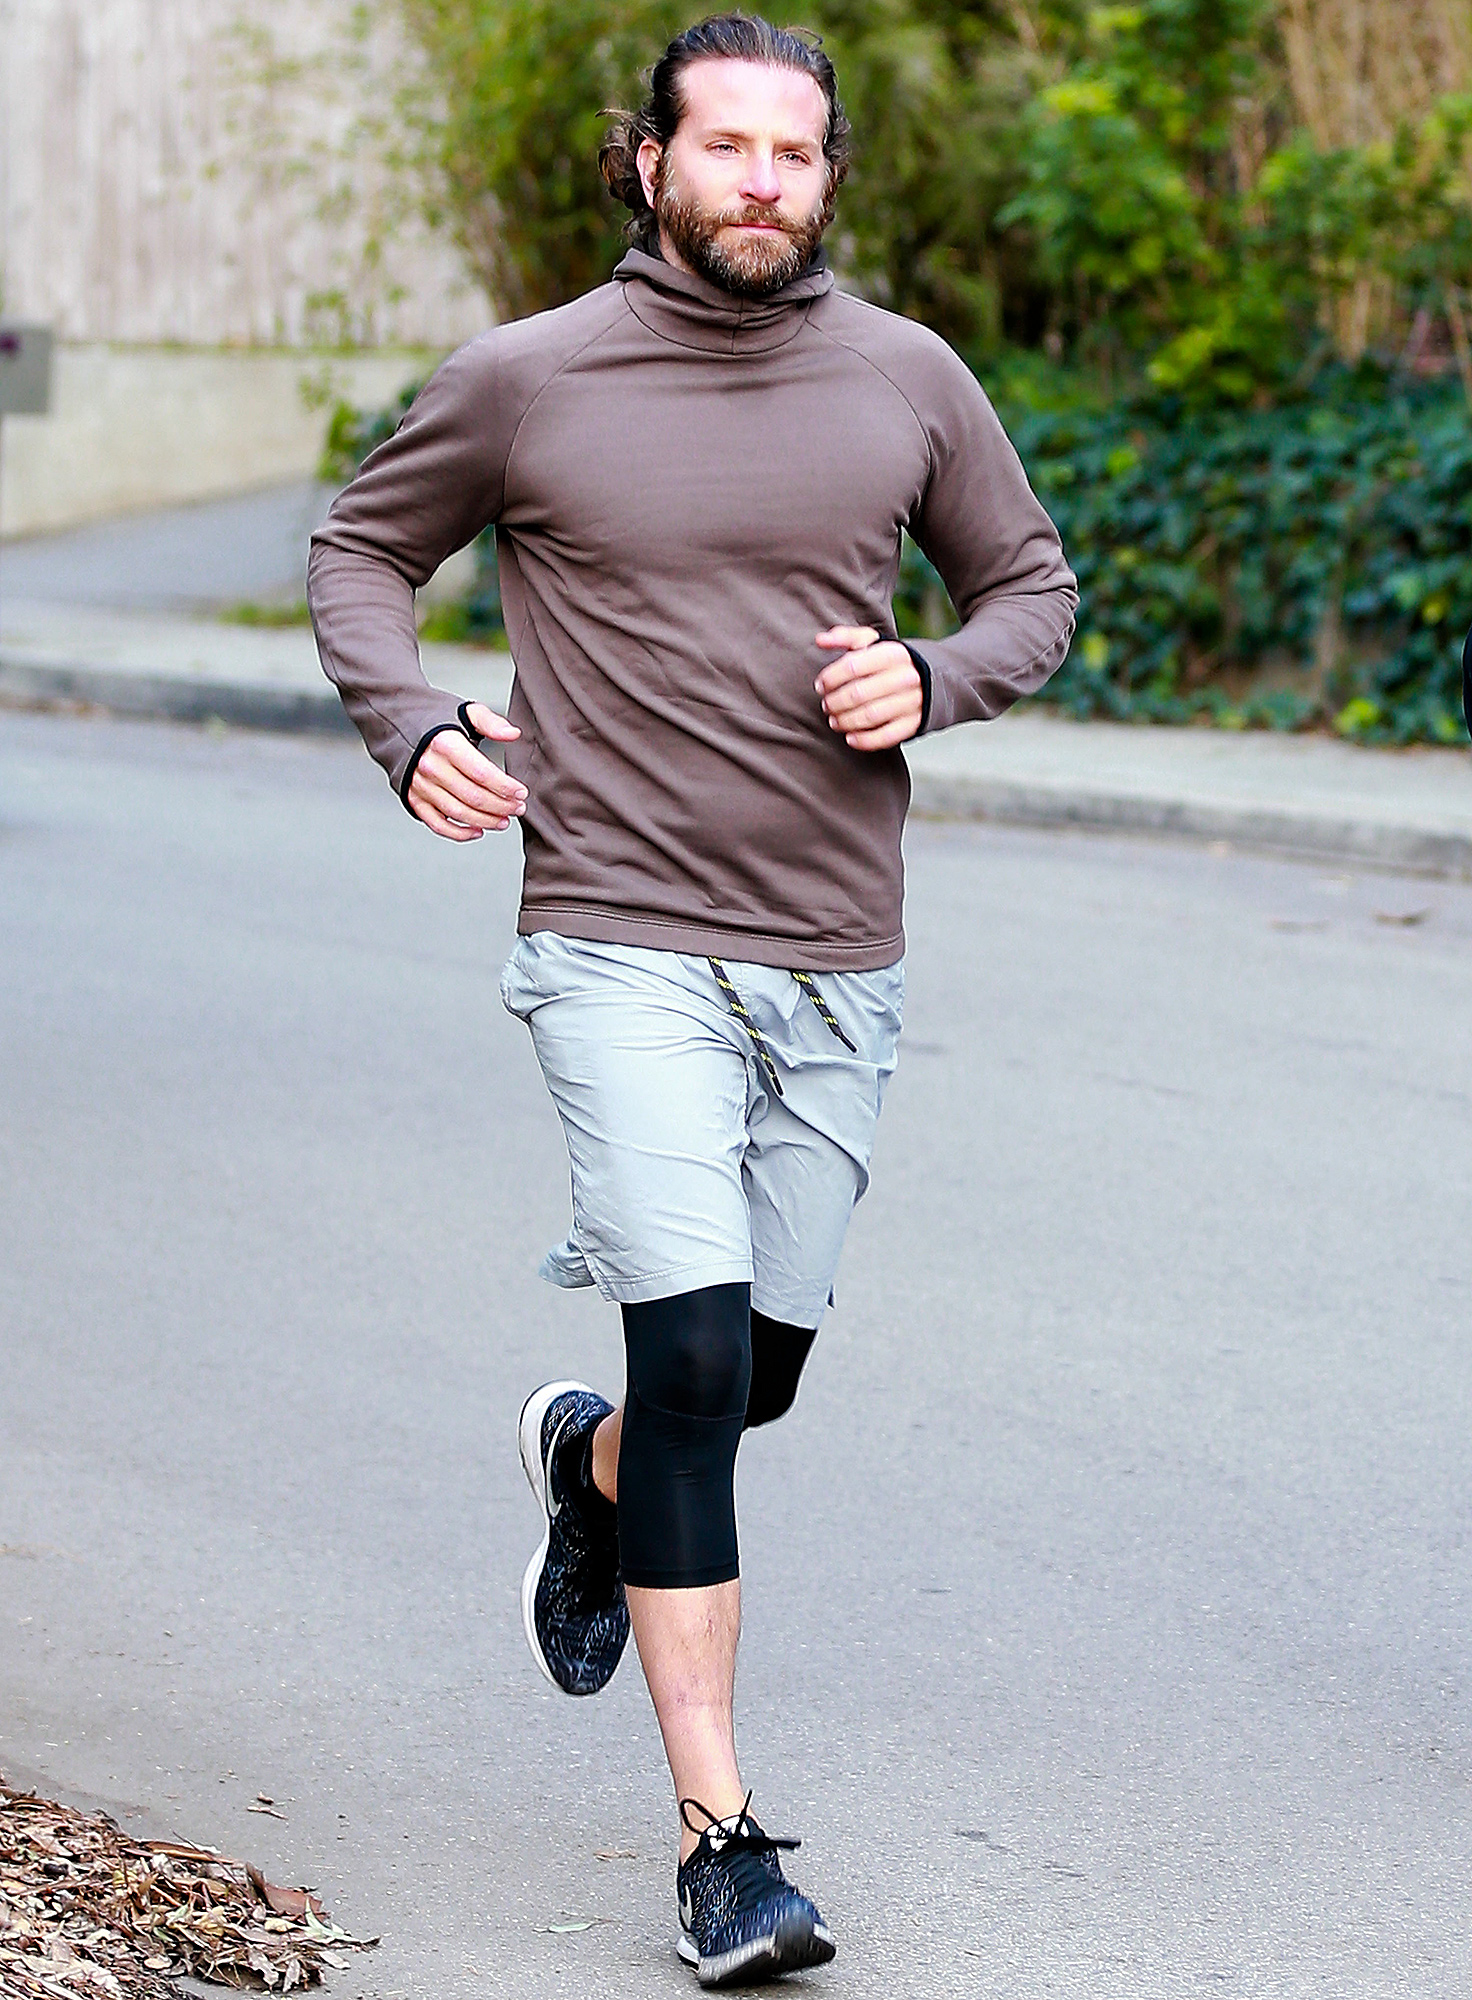 Exclusive... Premium: Bradley Cooper Jogging***NO USE W/O PRIOR AGREEMENT - CALL FOR PRICING***